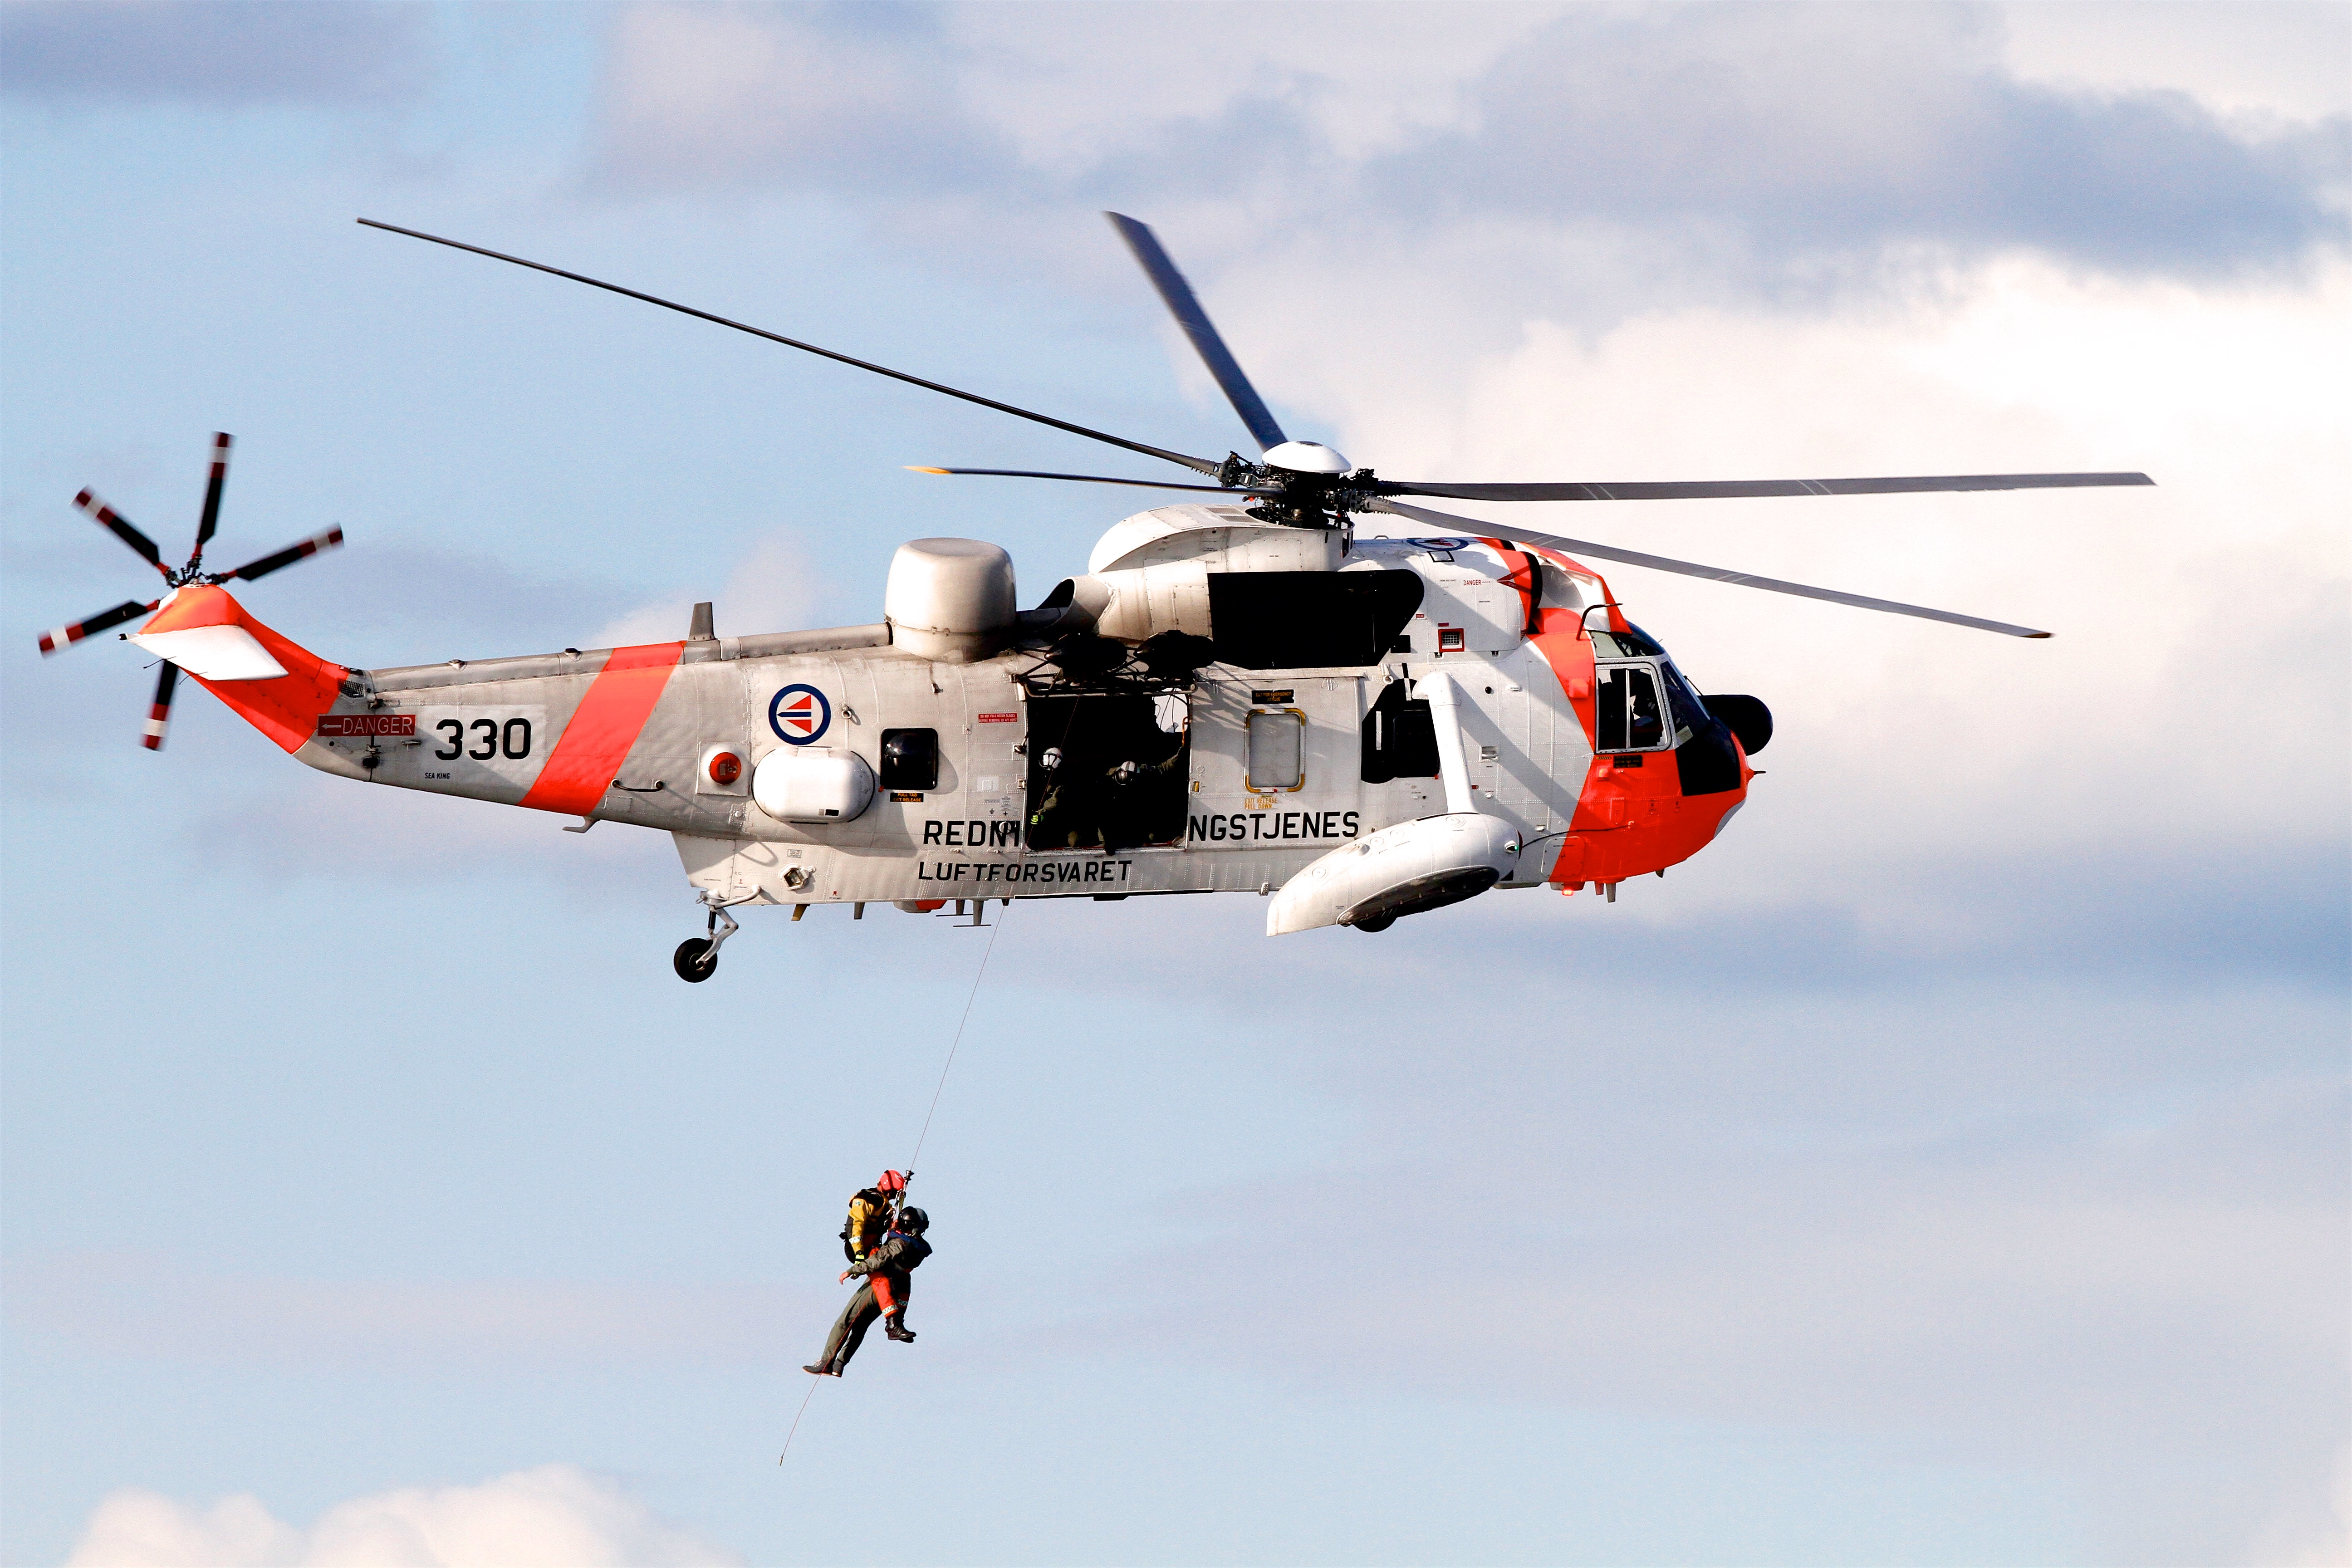 coastguard rescuing people from water by helicopter